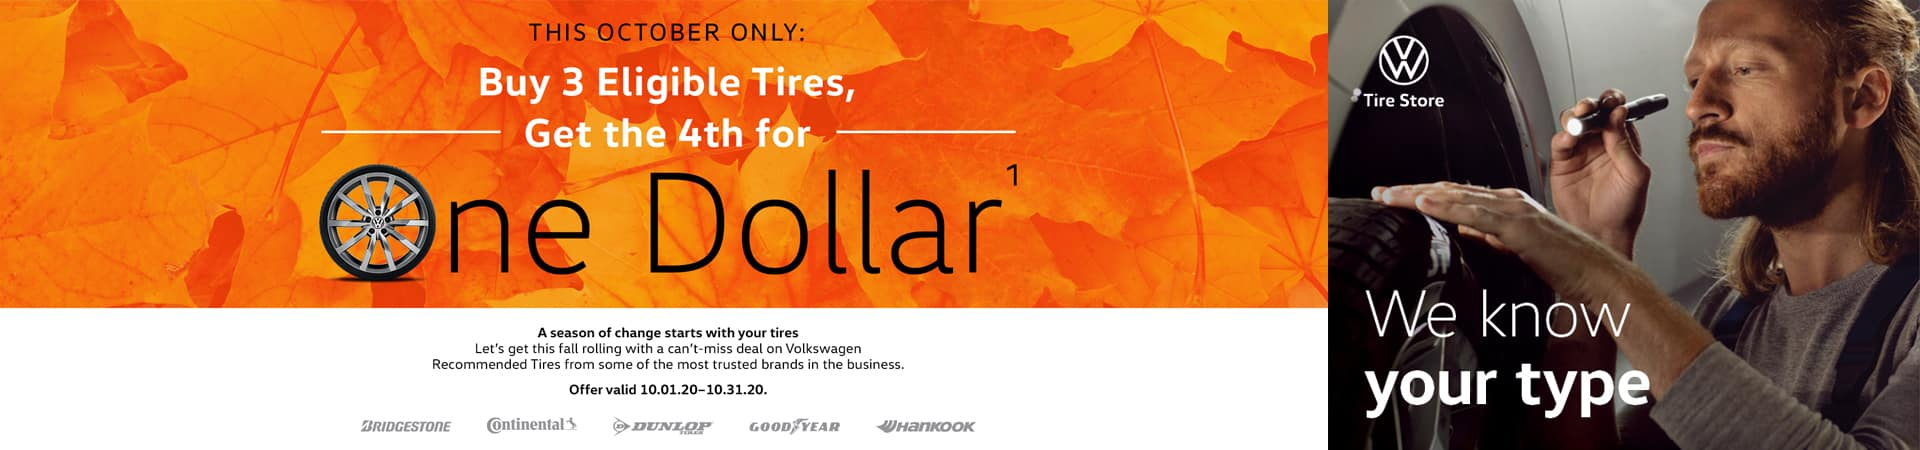 VW Tire Offers October